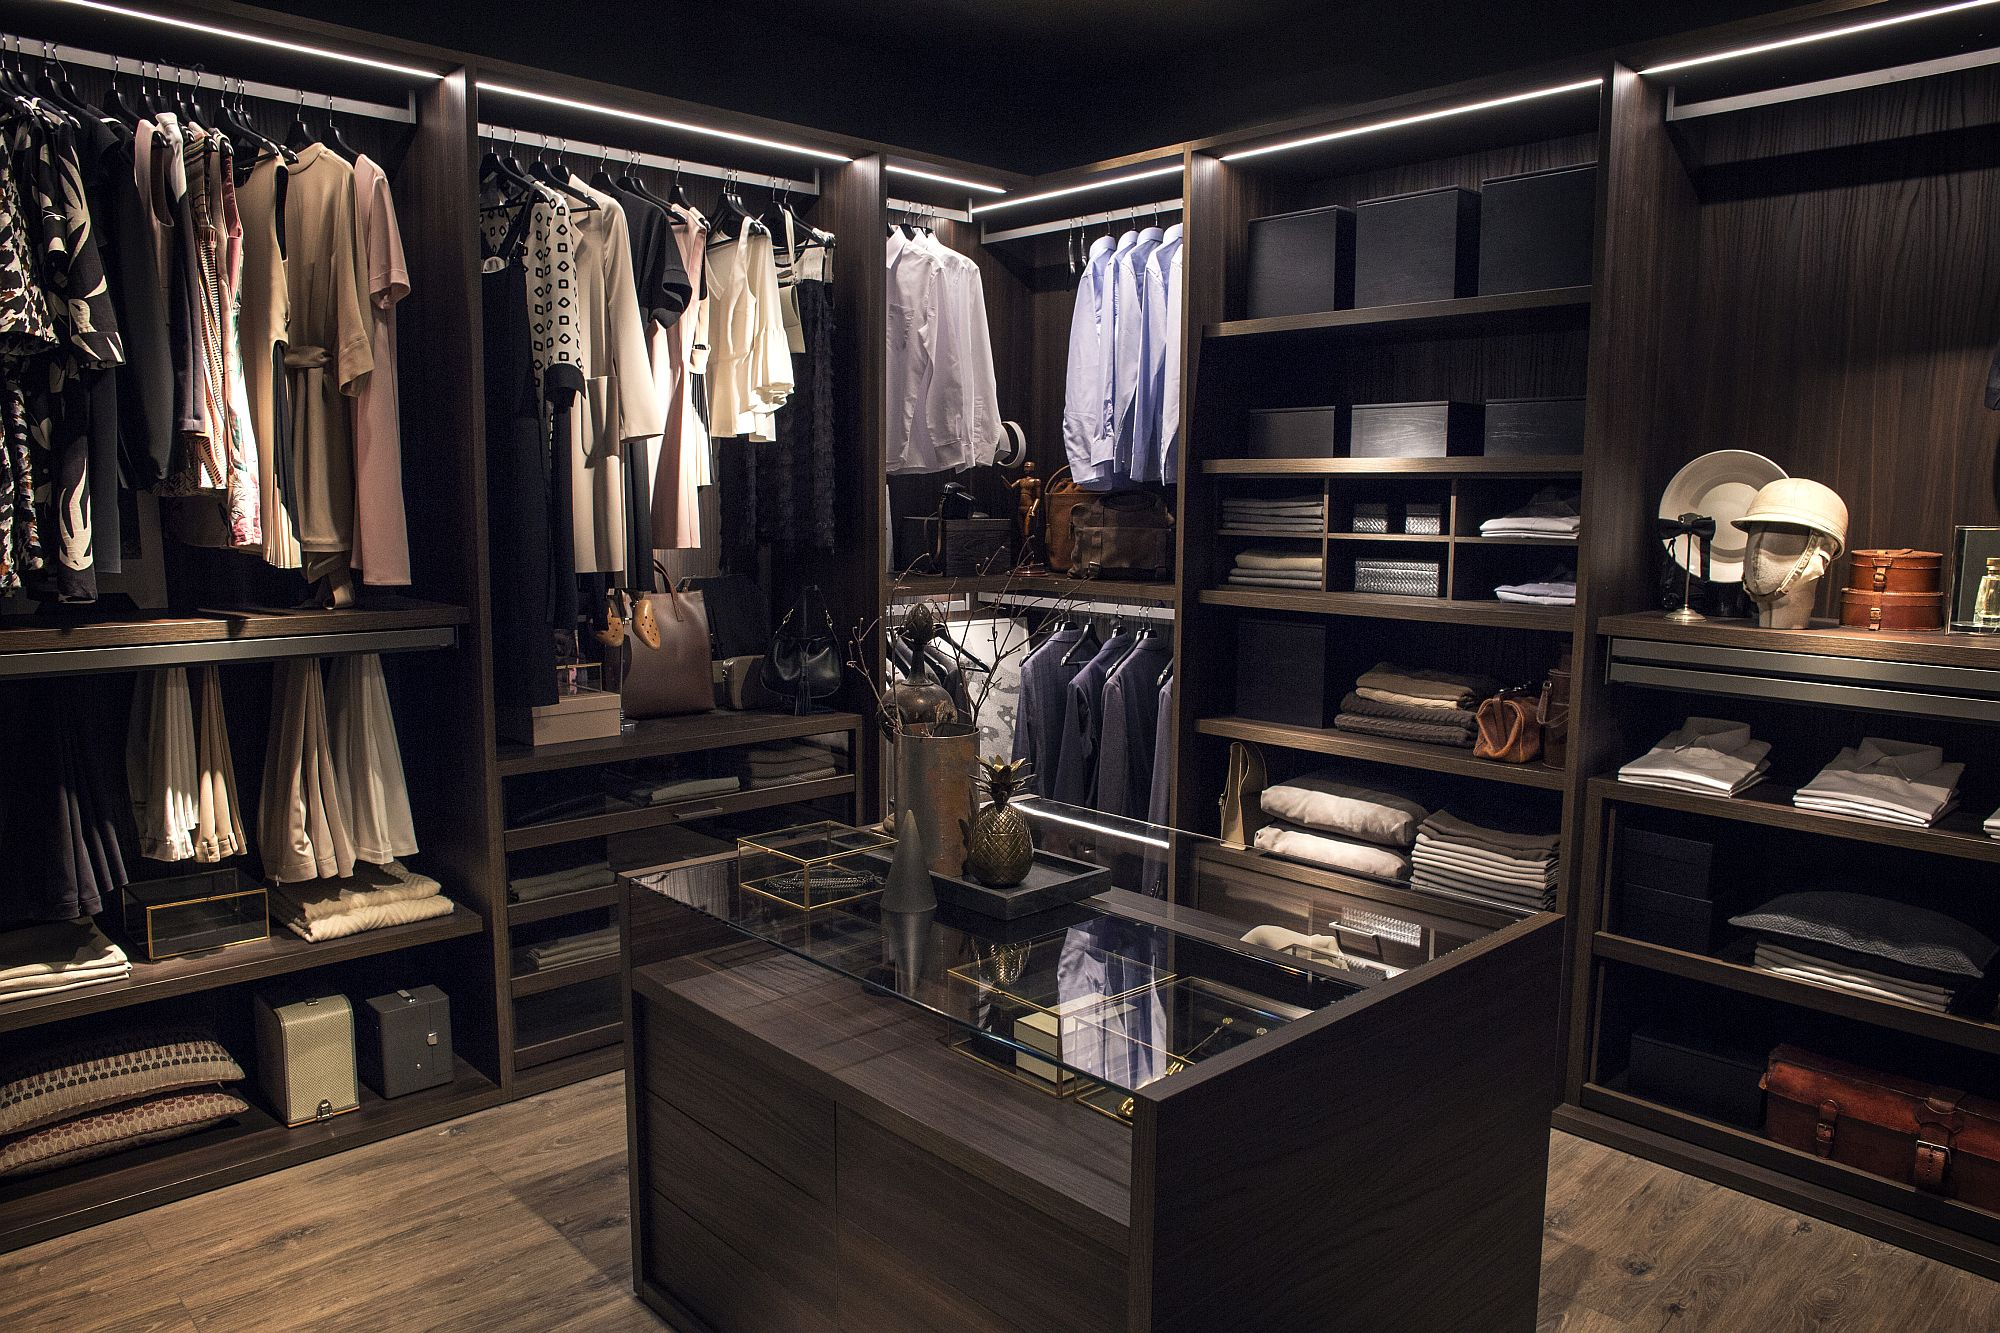 Expansive walk-in closet offers ample shelf space for your trendy wardrobe